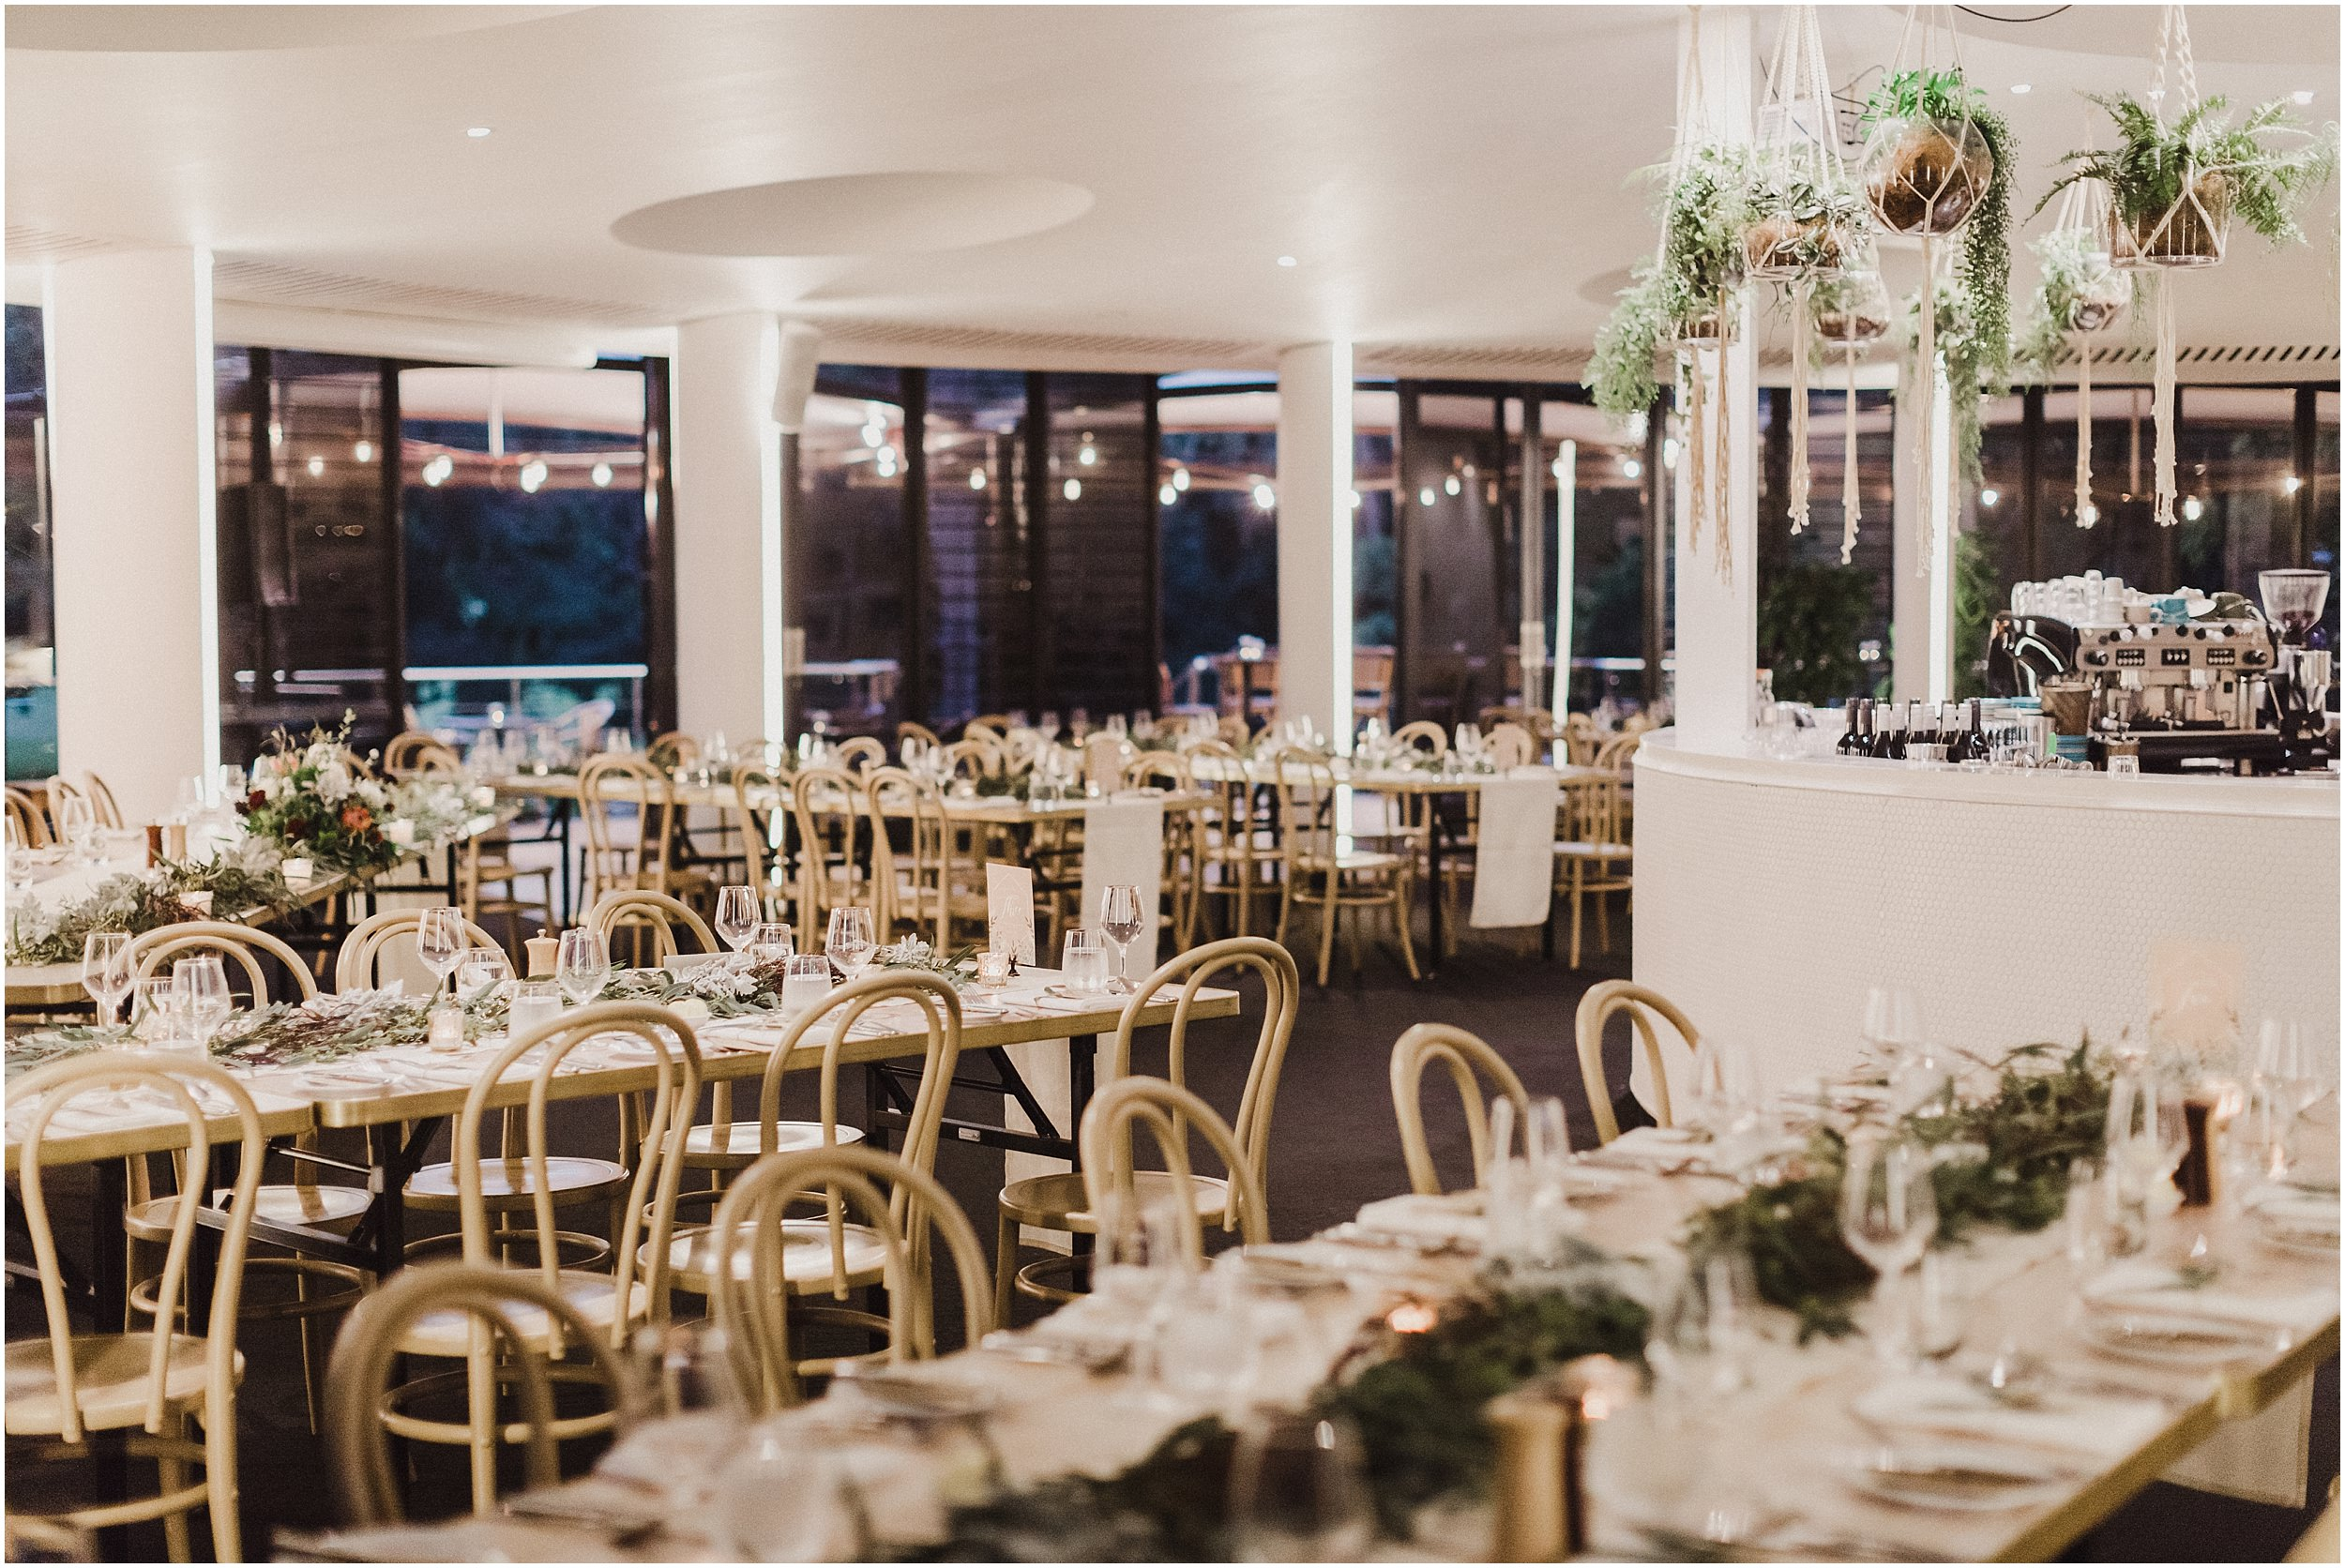 Pavilion Restaurant Sydney Wedding Reception